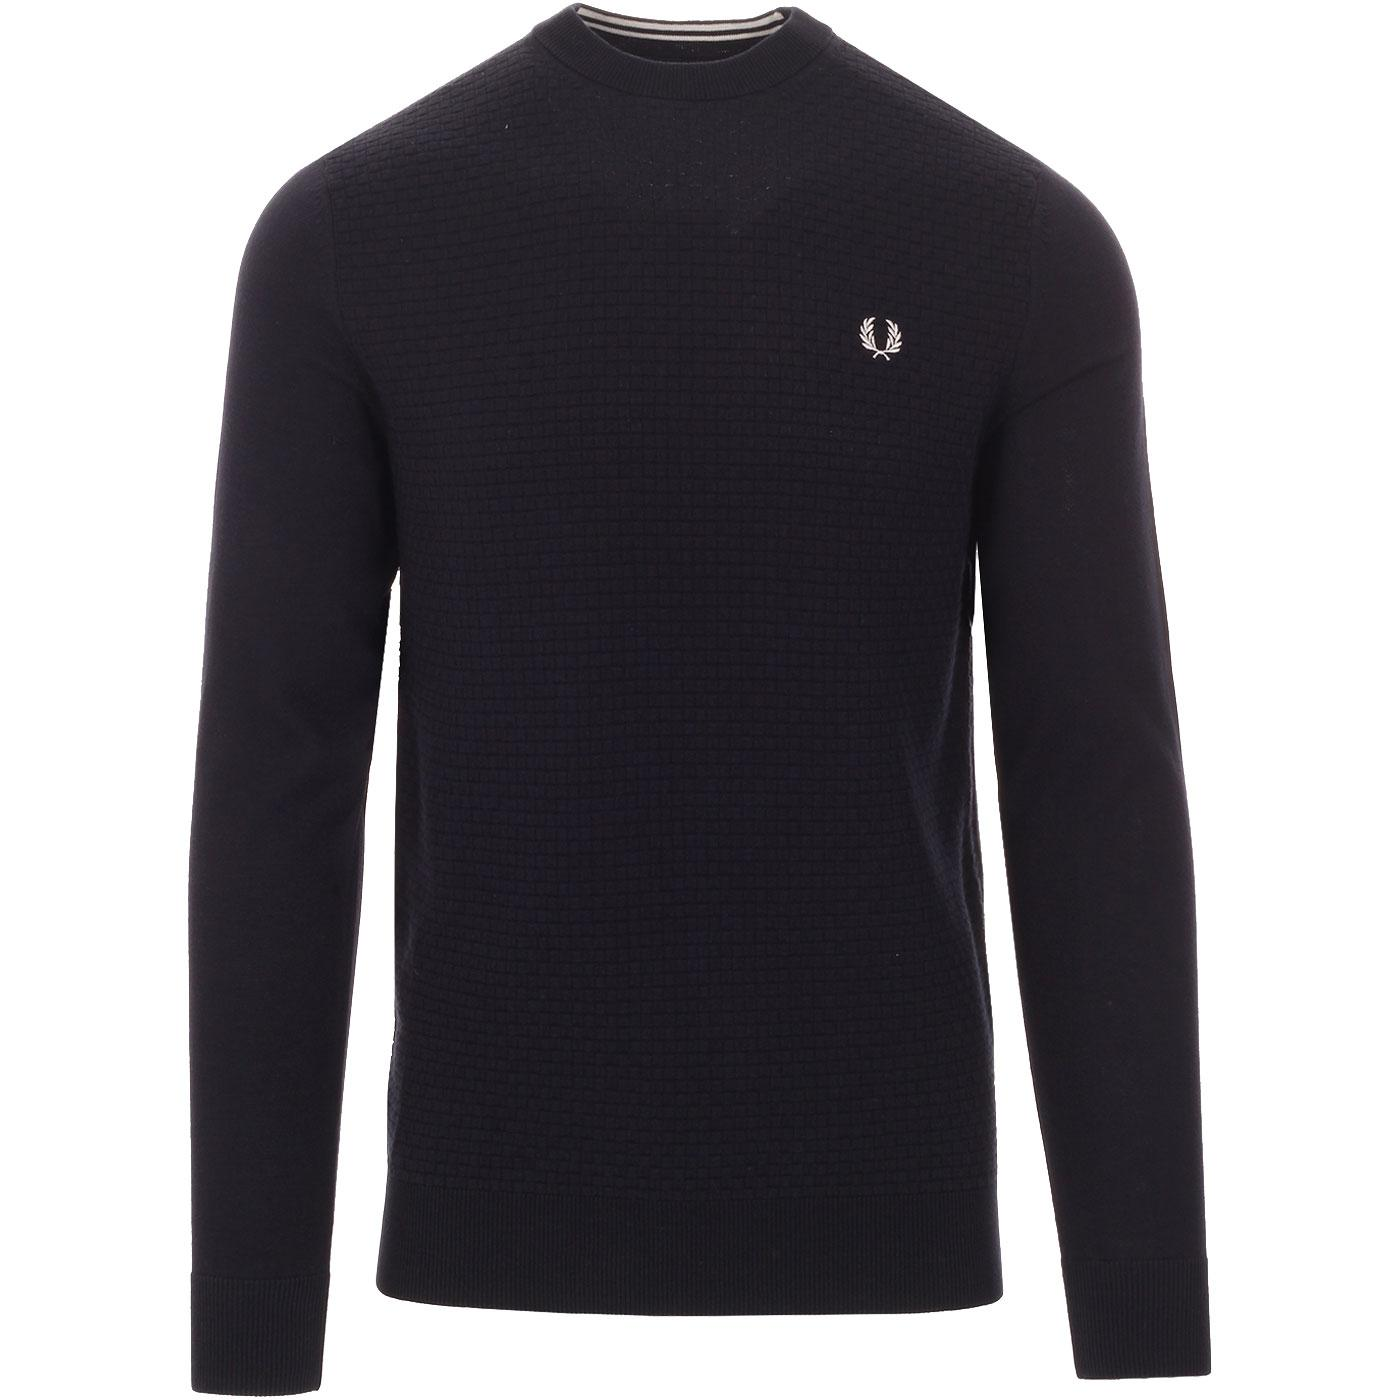 FRED PERRY Retro Basket Weave Textured Jumper